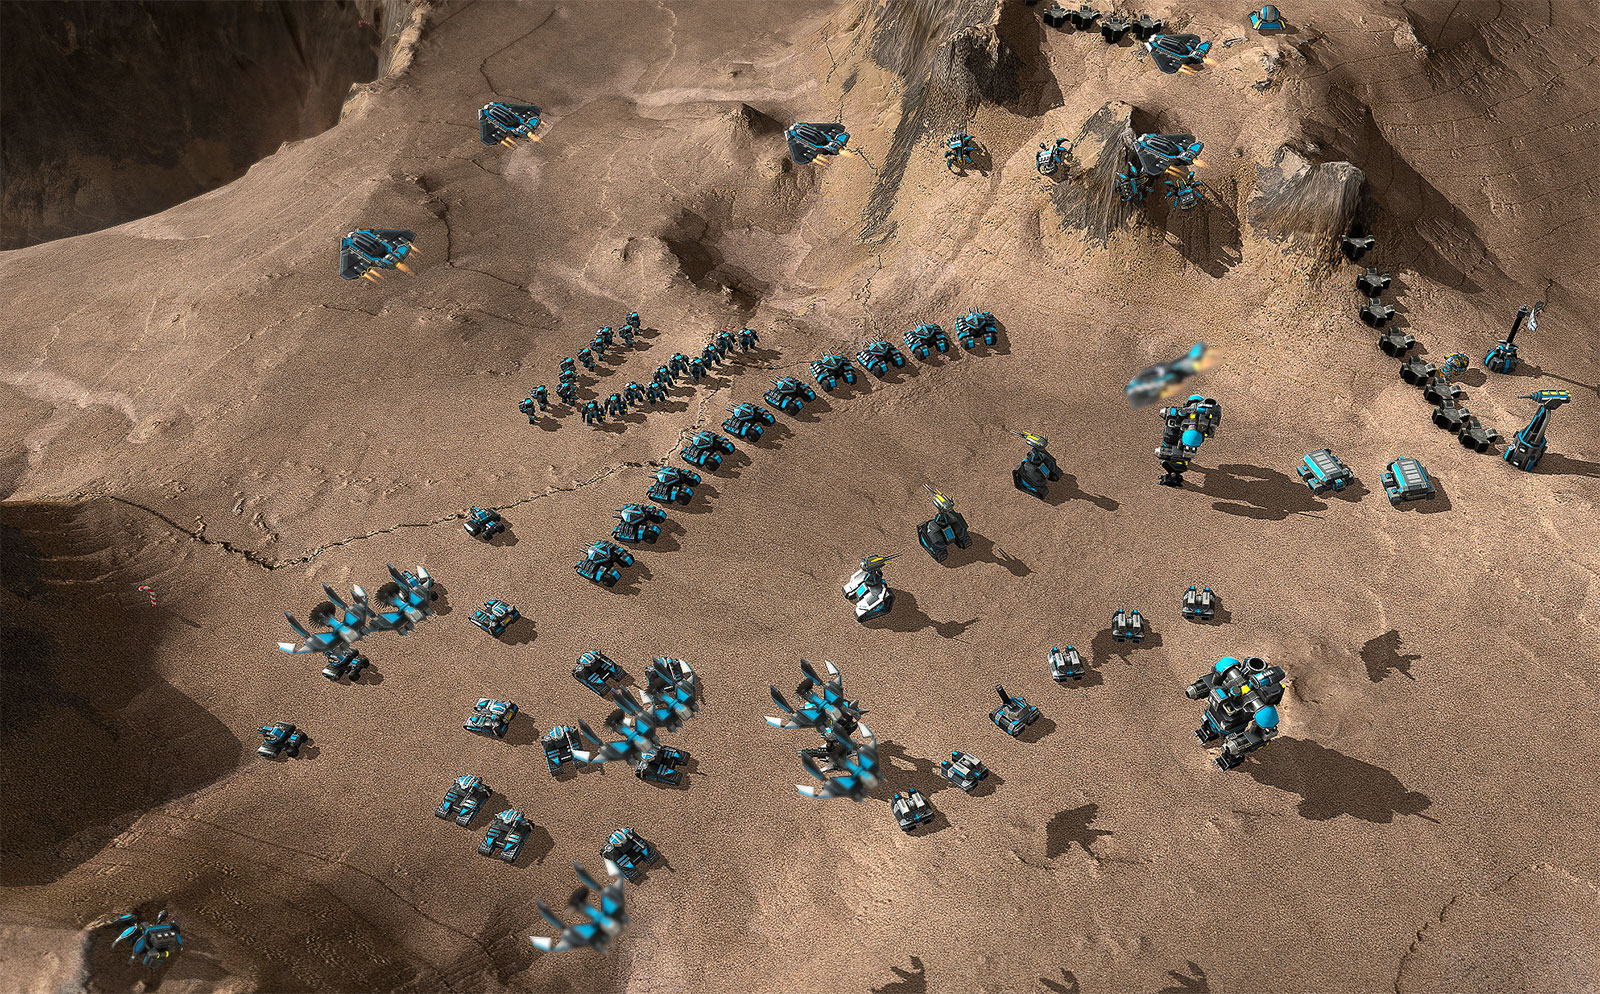 Armada army with lots of different tanks, bots and aircraft